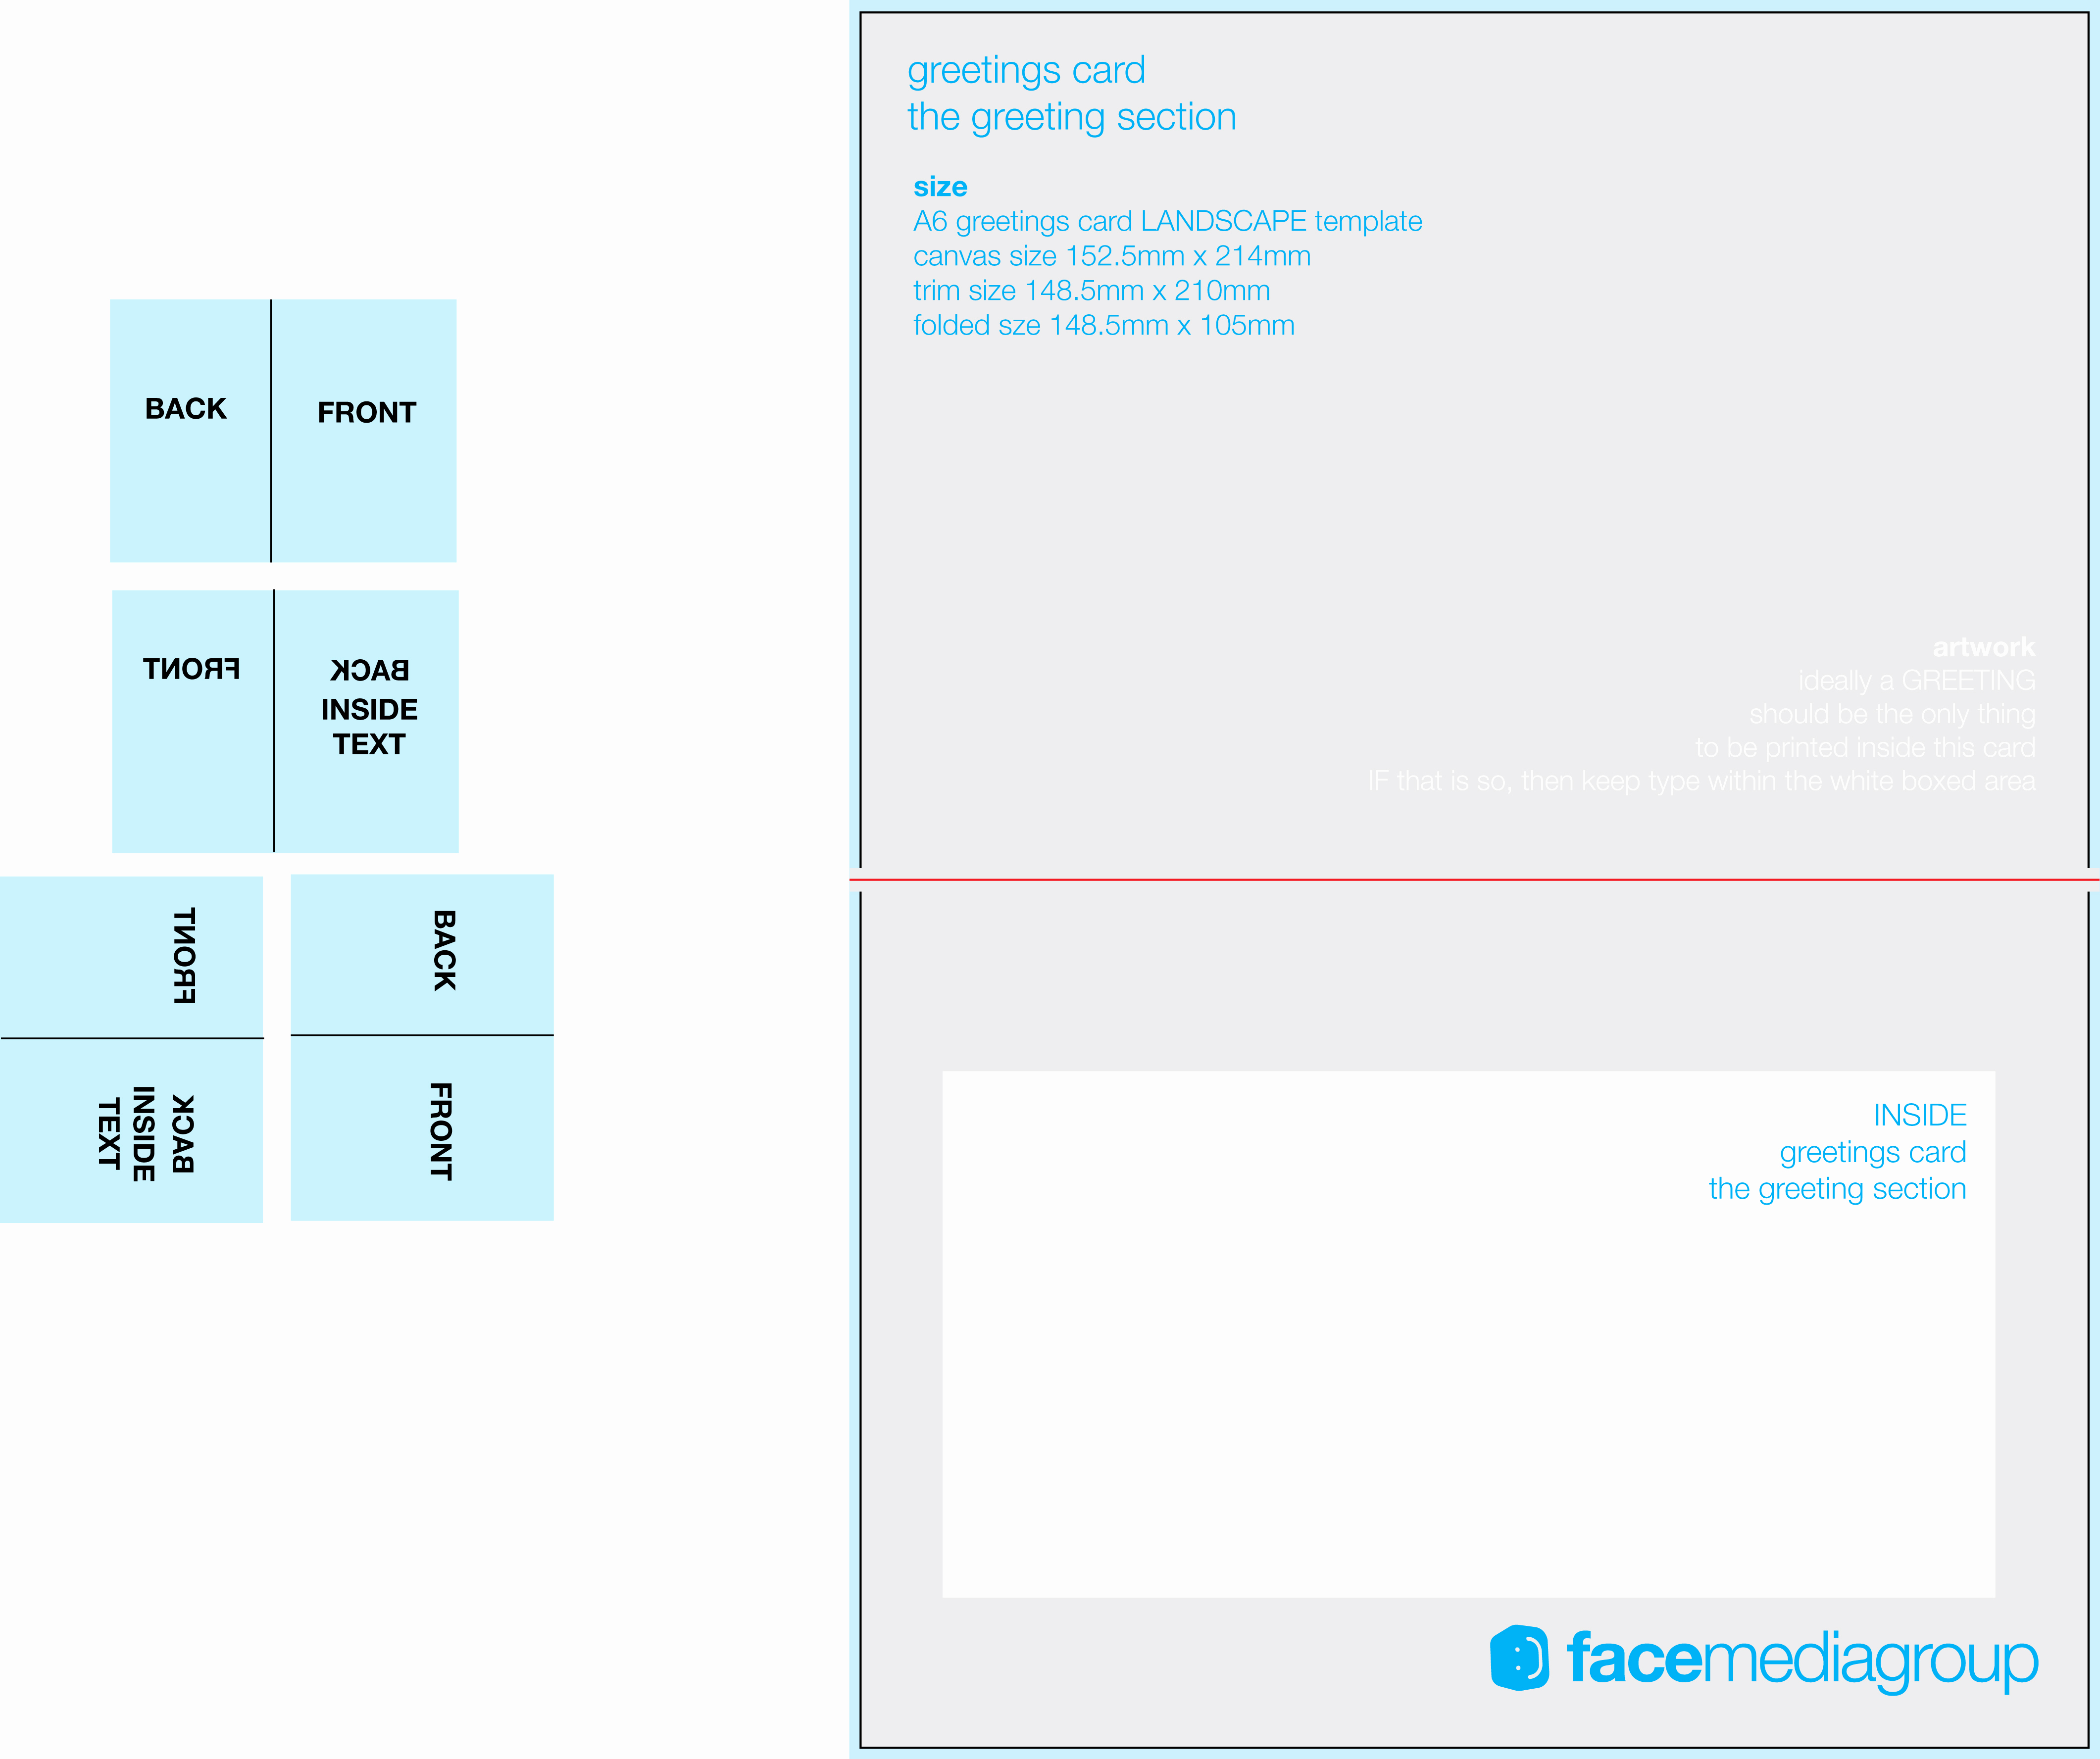 Free Greeting Card Templates Unique Free Blank Greetings Card Artwork Templates for Download